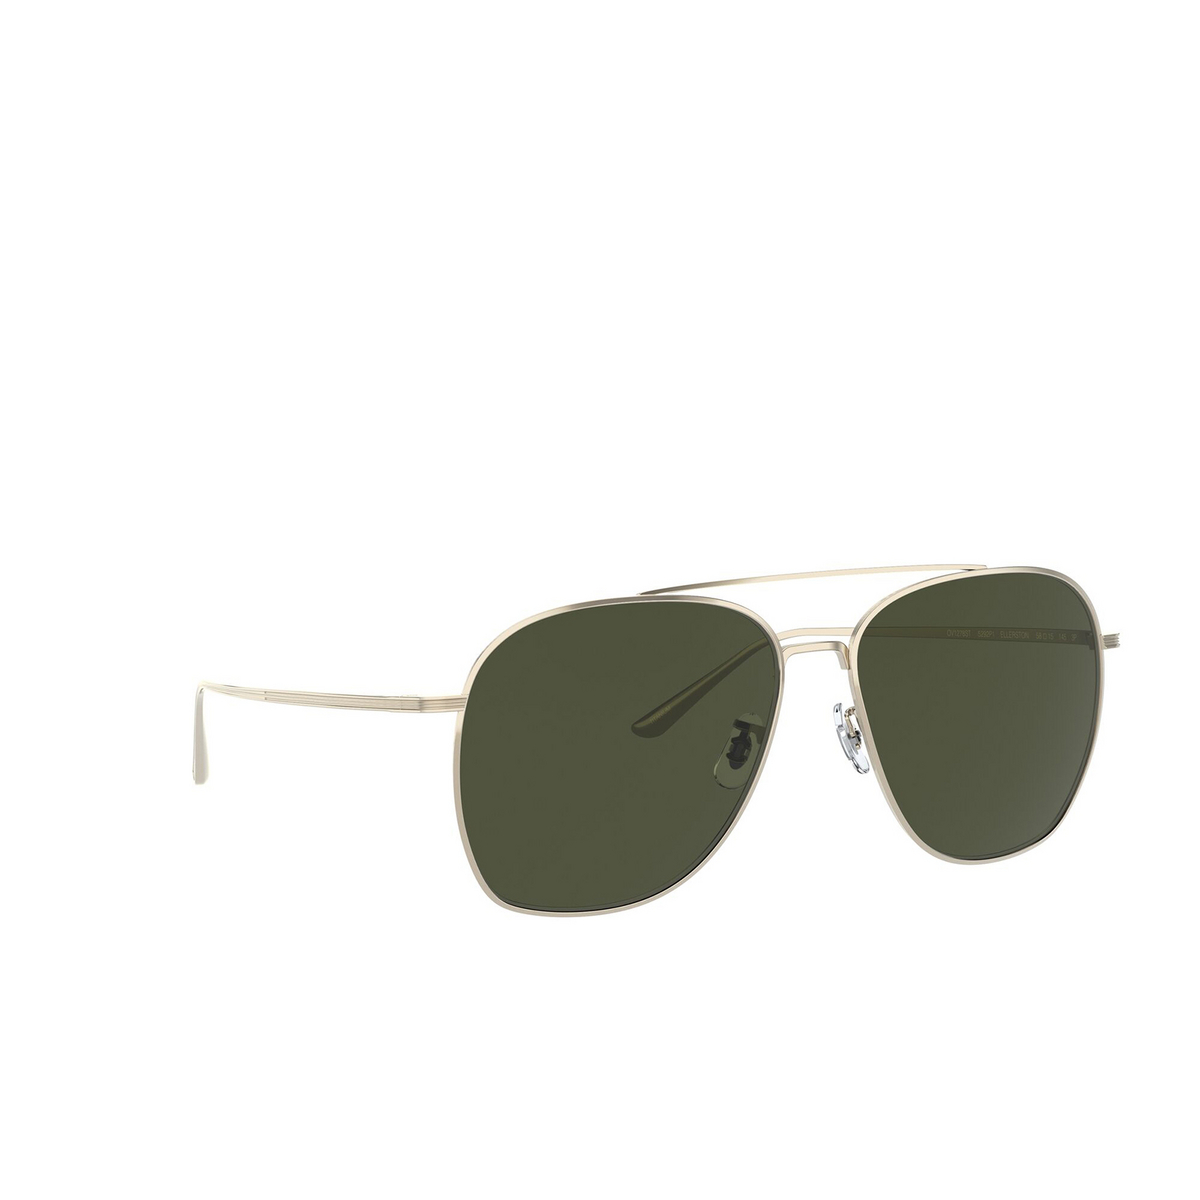 Oliver Peoples® Aviator Sunglasses: Ellerston OV1278ST color Gold 5292P1 - three-quarters view.